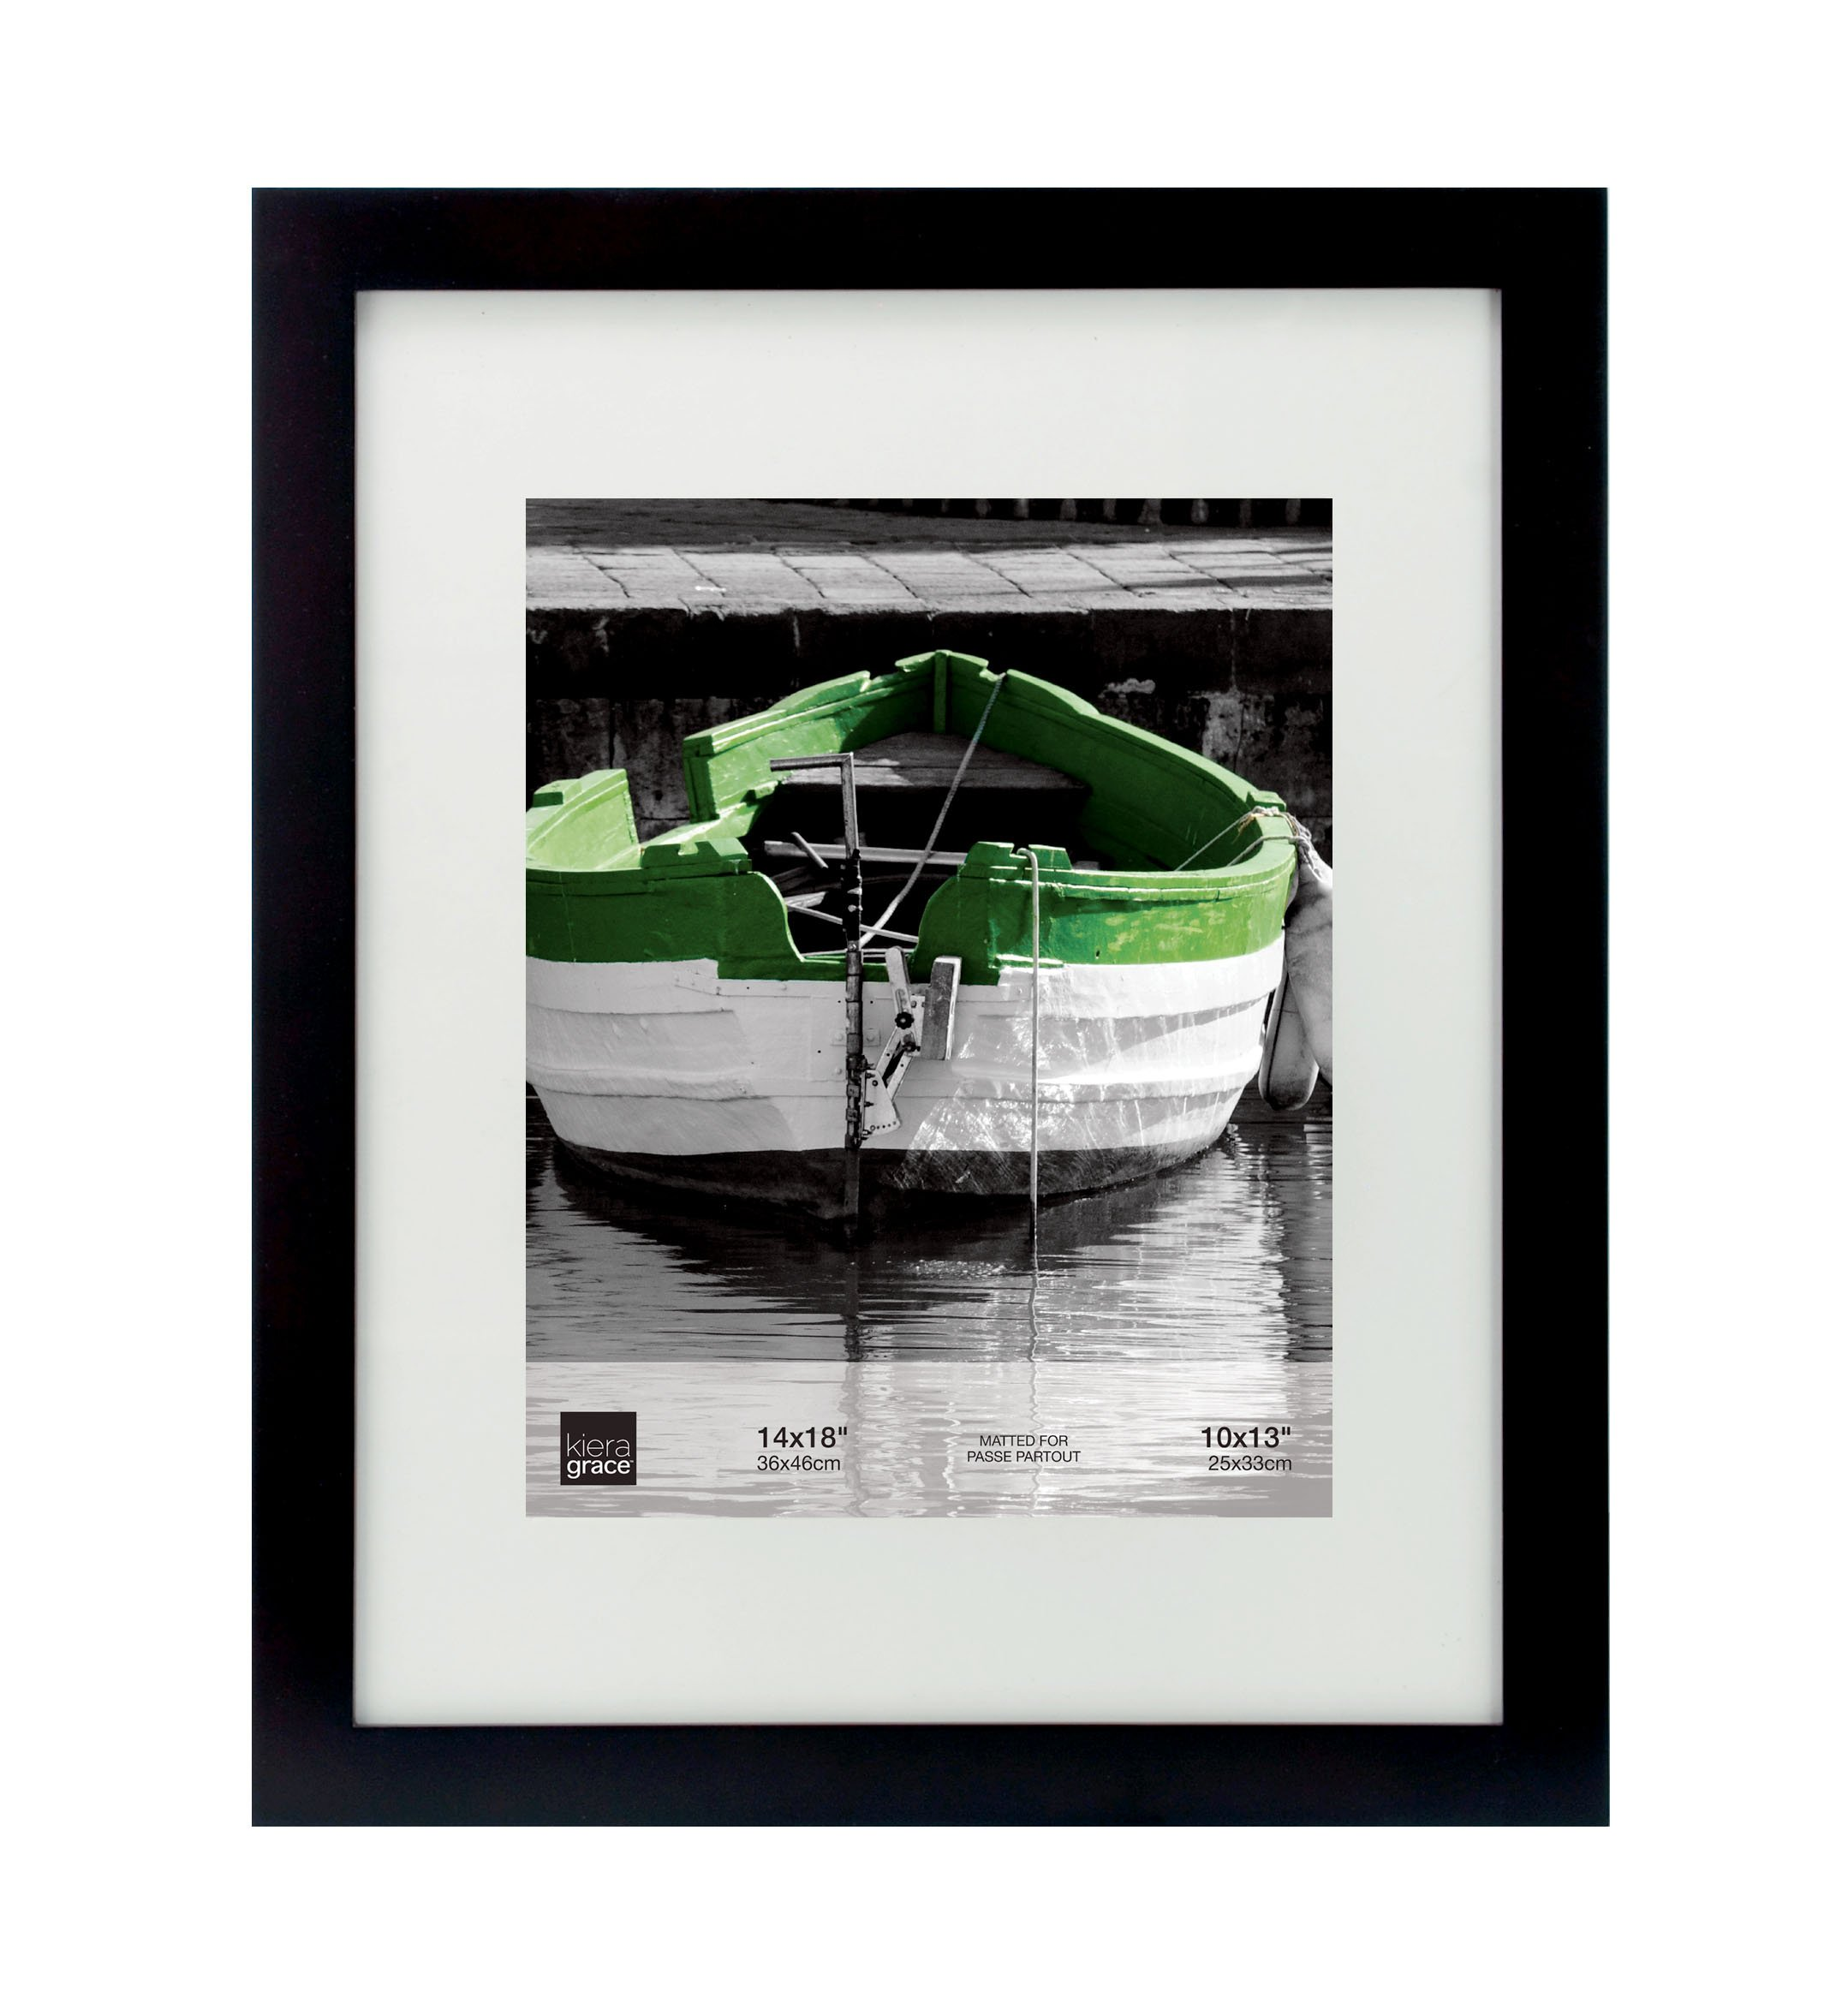 kieragrace Langford Wood Picture Frame, 14 by 18 Inch Matted for 10 by 13 Inch Photo, Black